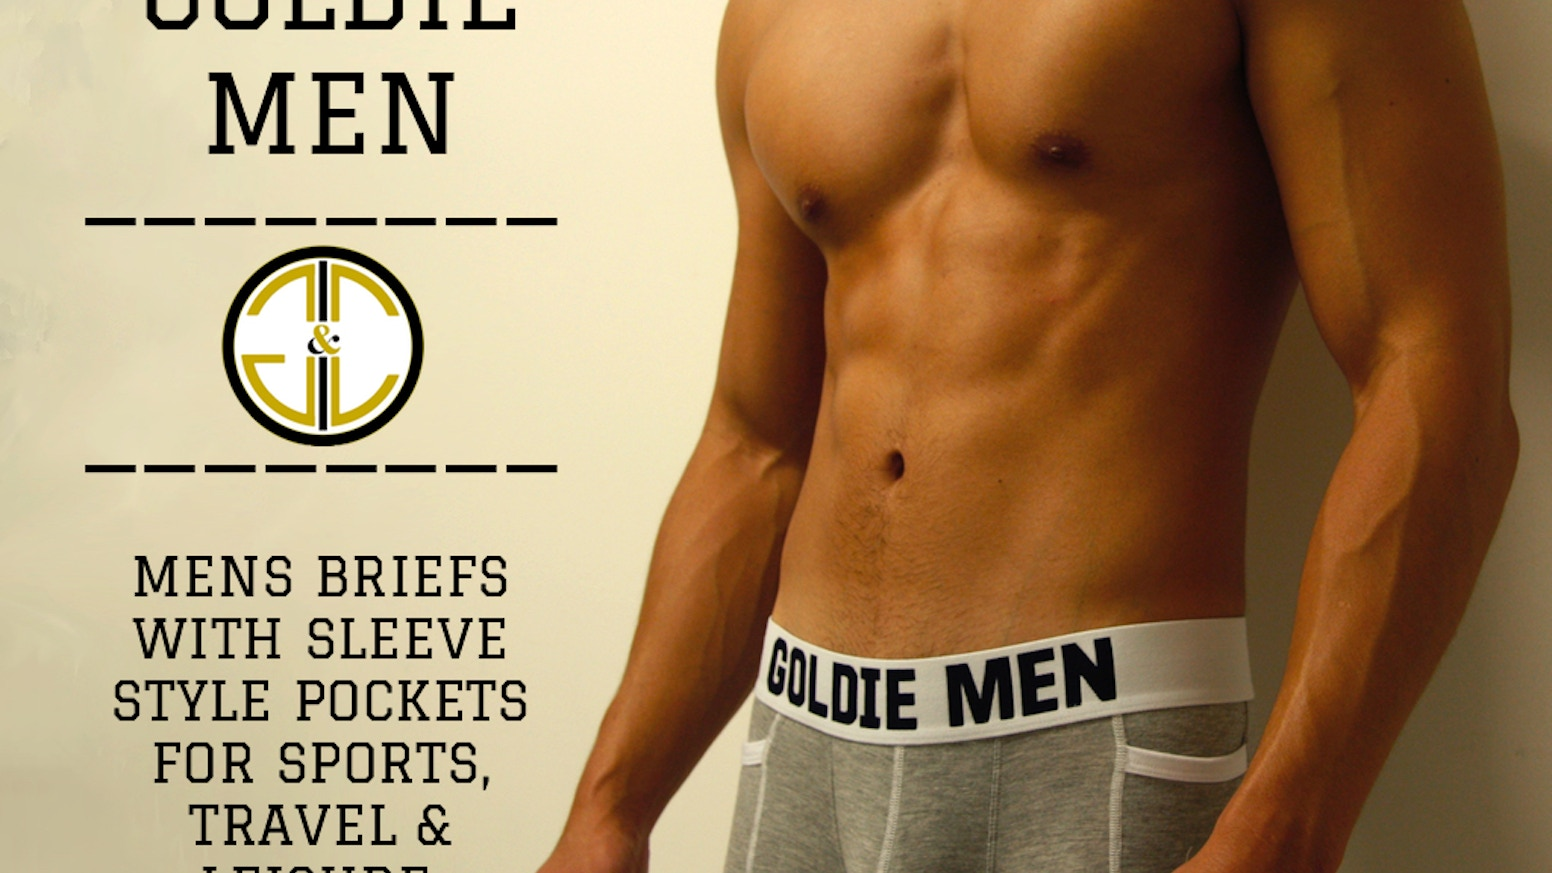 Mens Briefs With Sleeve Style Pockets For Sports 06a4d31ce4e1